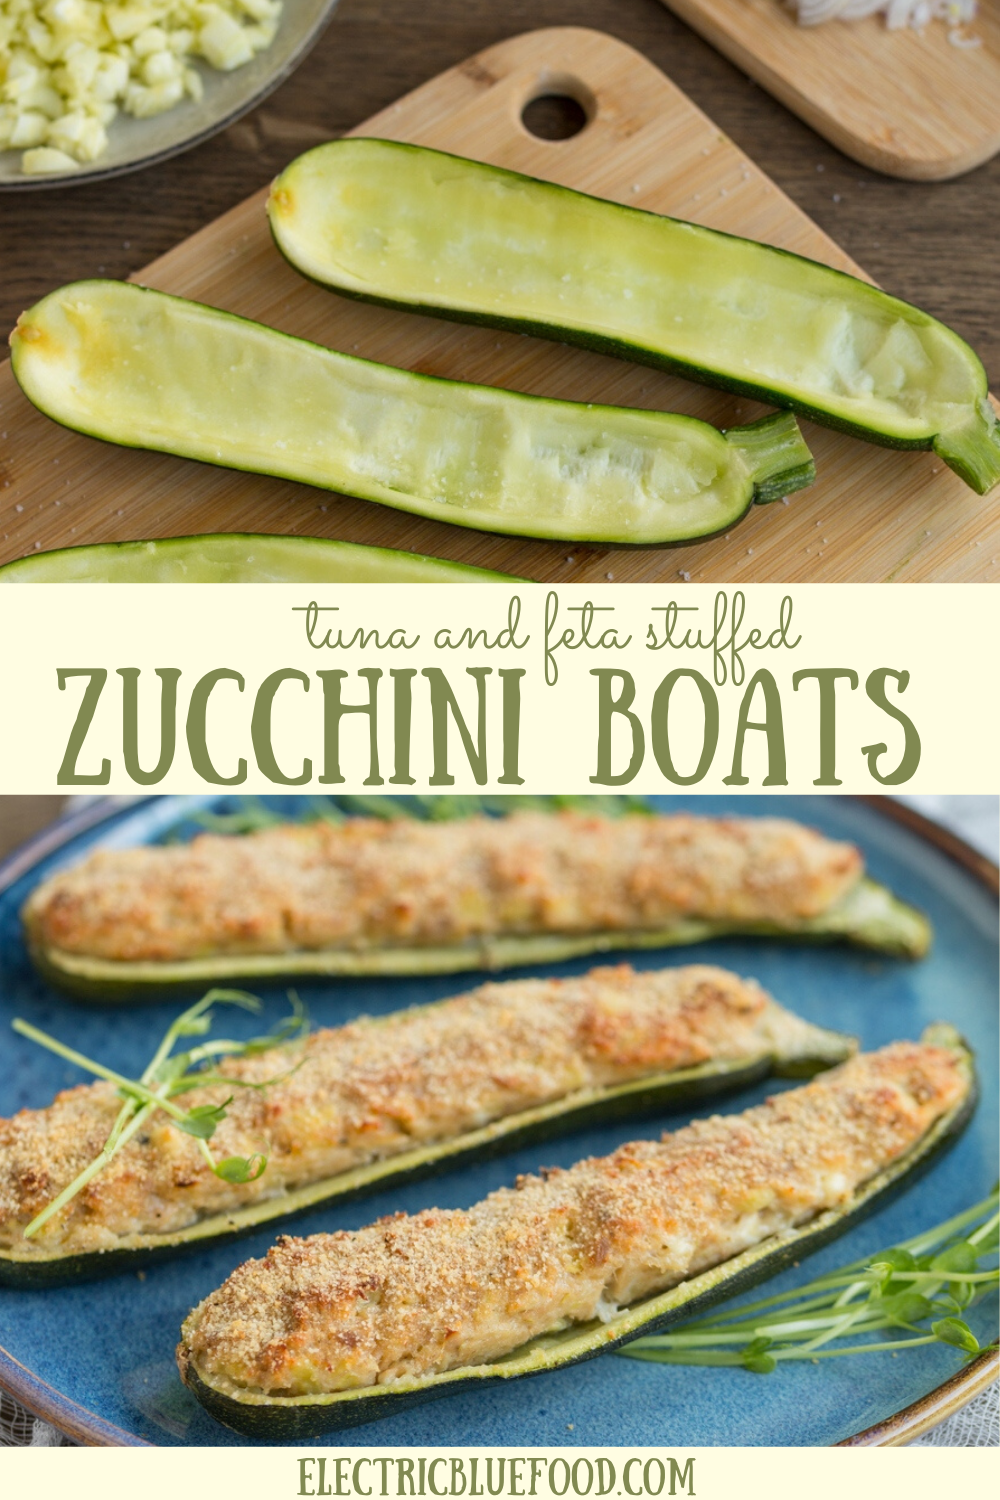 Stuff your zucchini with tuna and feta and bake them in the oven. Your tuna zucchini boats will be a success!